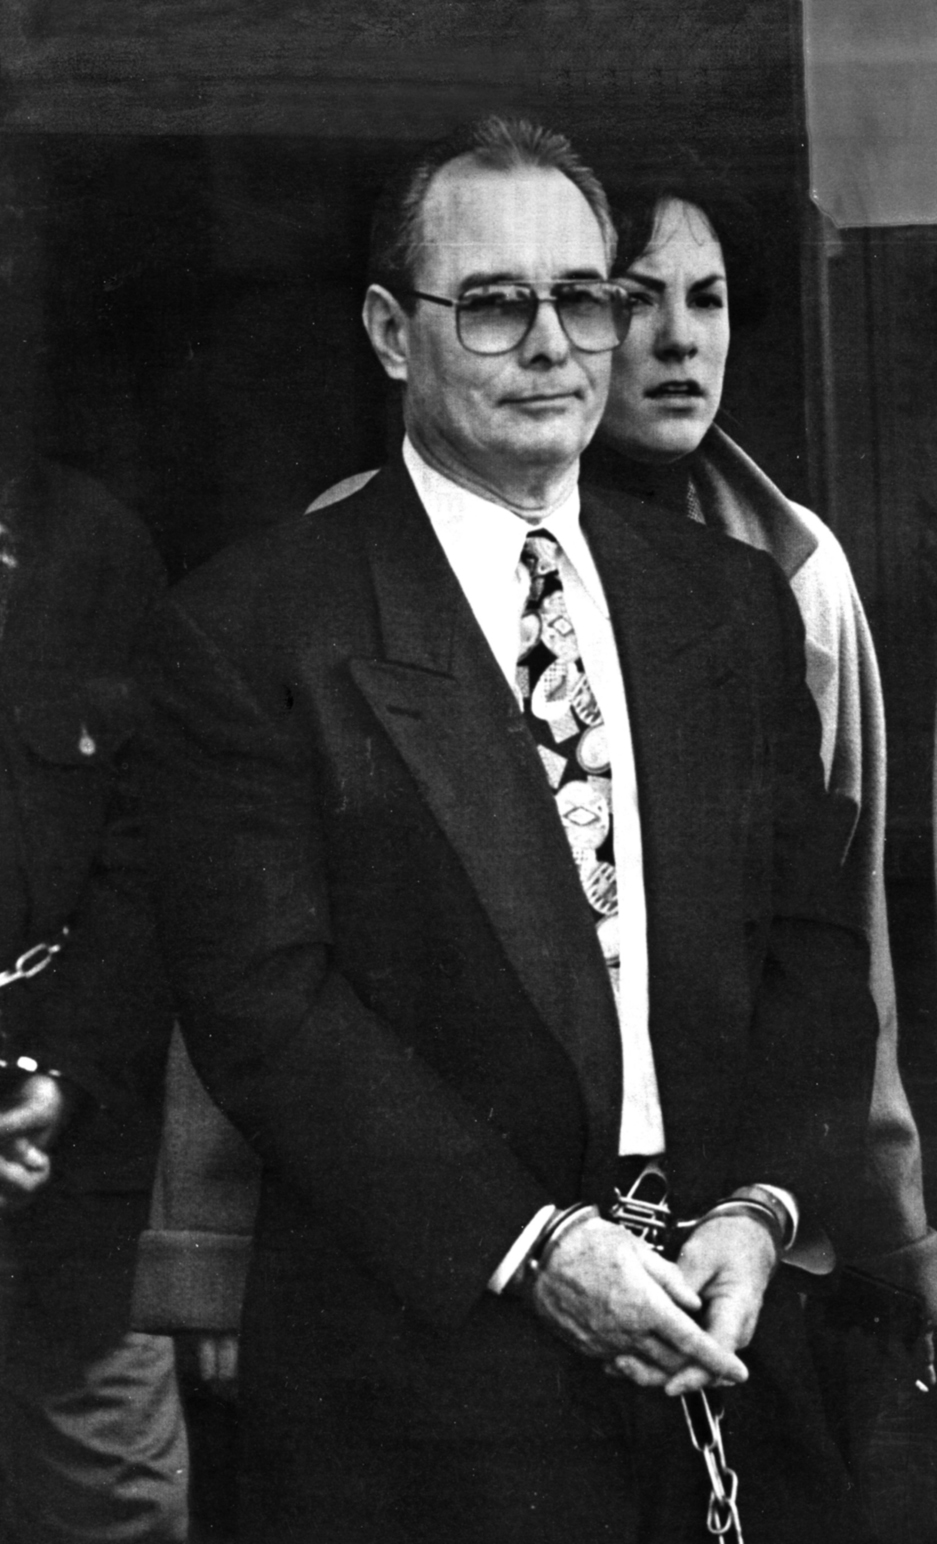 """Ouimette is escorted out of Federal Court after being sentenced to life in prison without parole on February 1, 1996. Ouimette was known for his flashy outfits and lifestyle;retired state police captain Brian Andrews described him as the """"Prince of Atwells Avenue."""" Courtesy of The Providence Journal/David Carson."""